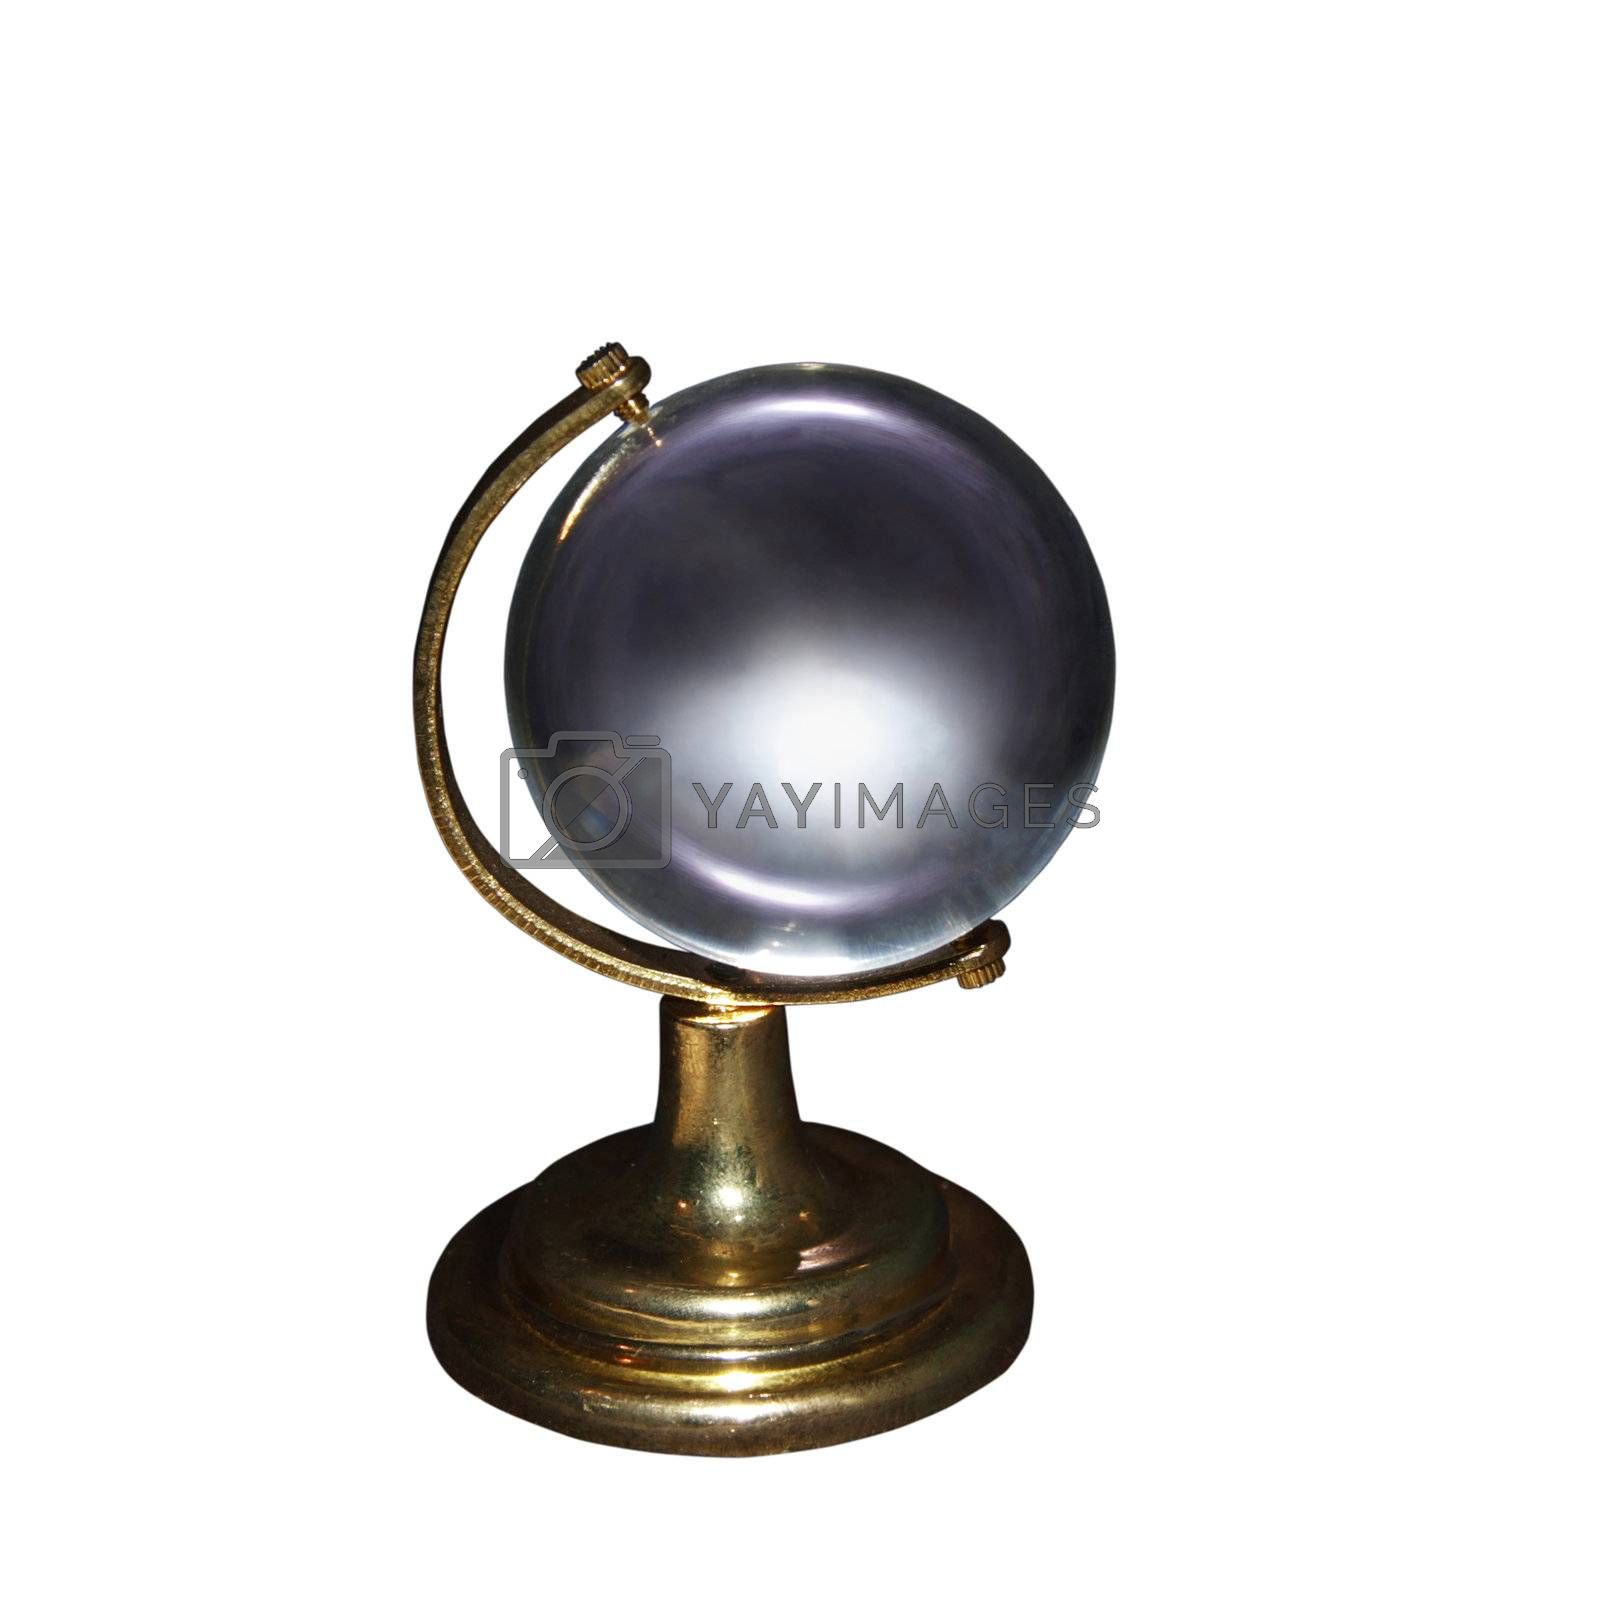 cutout of a clear crystal globe